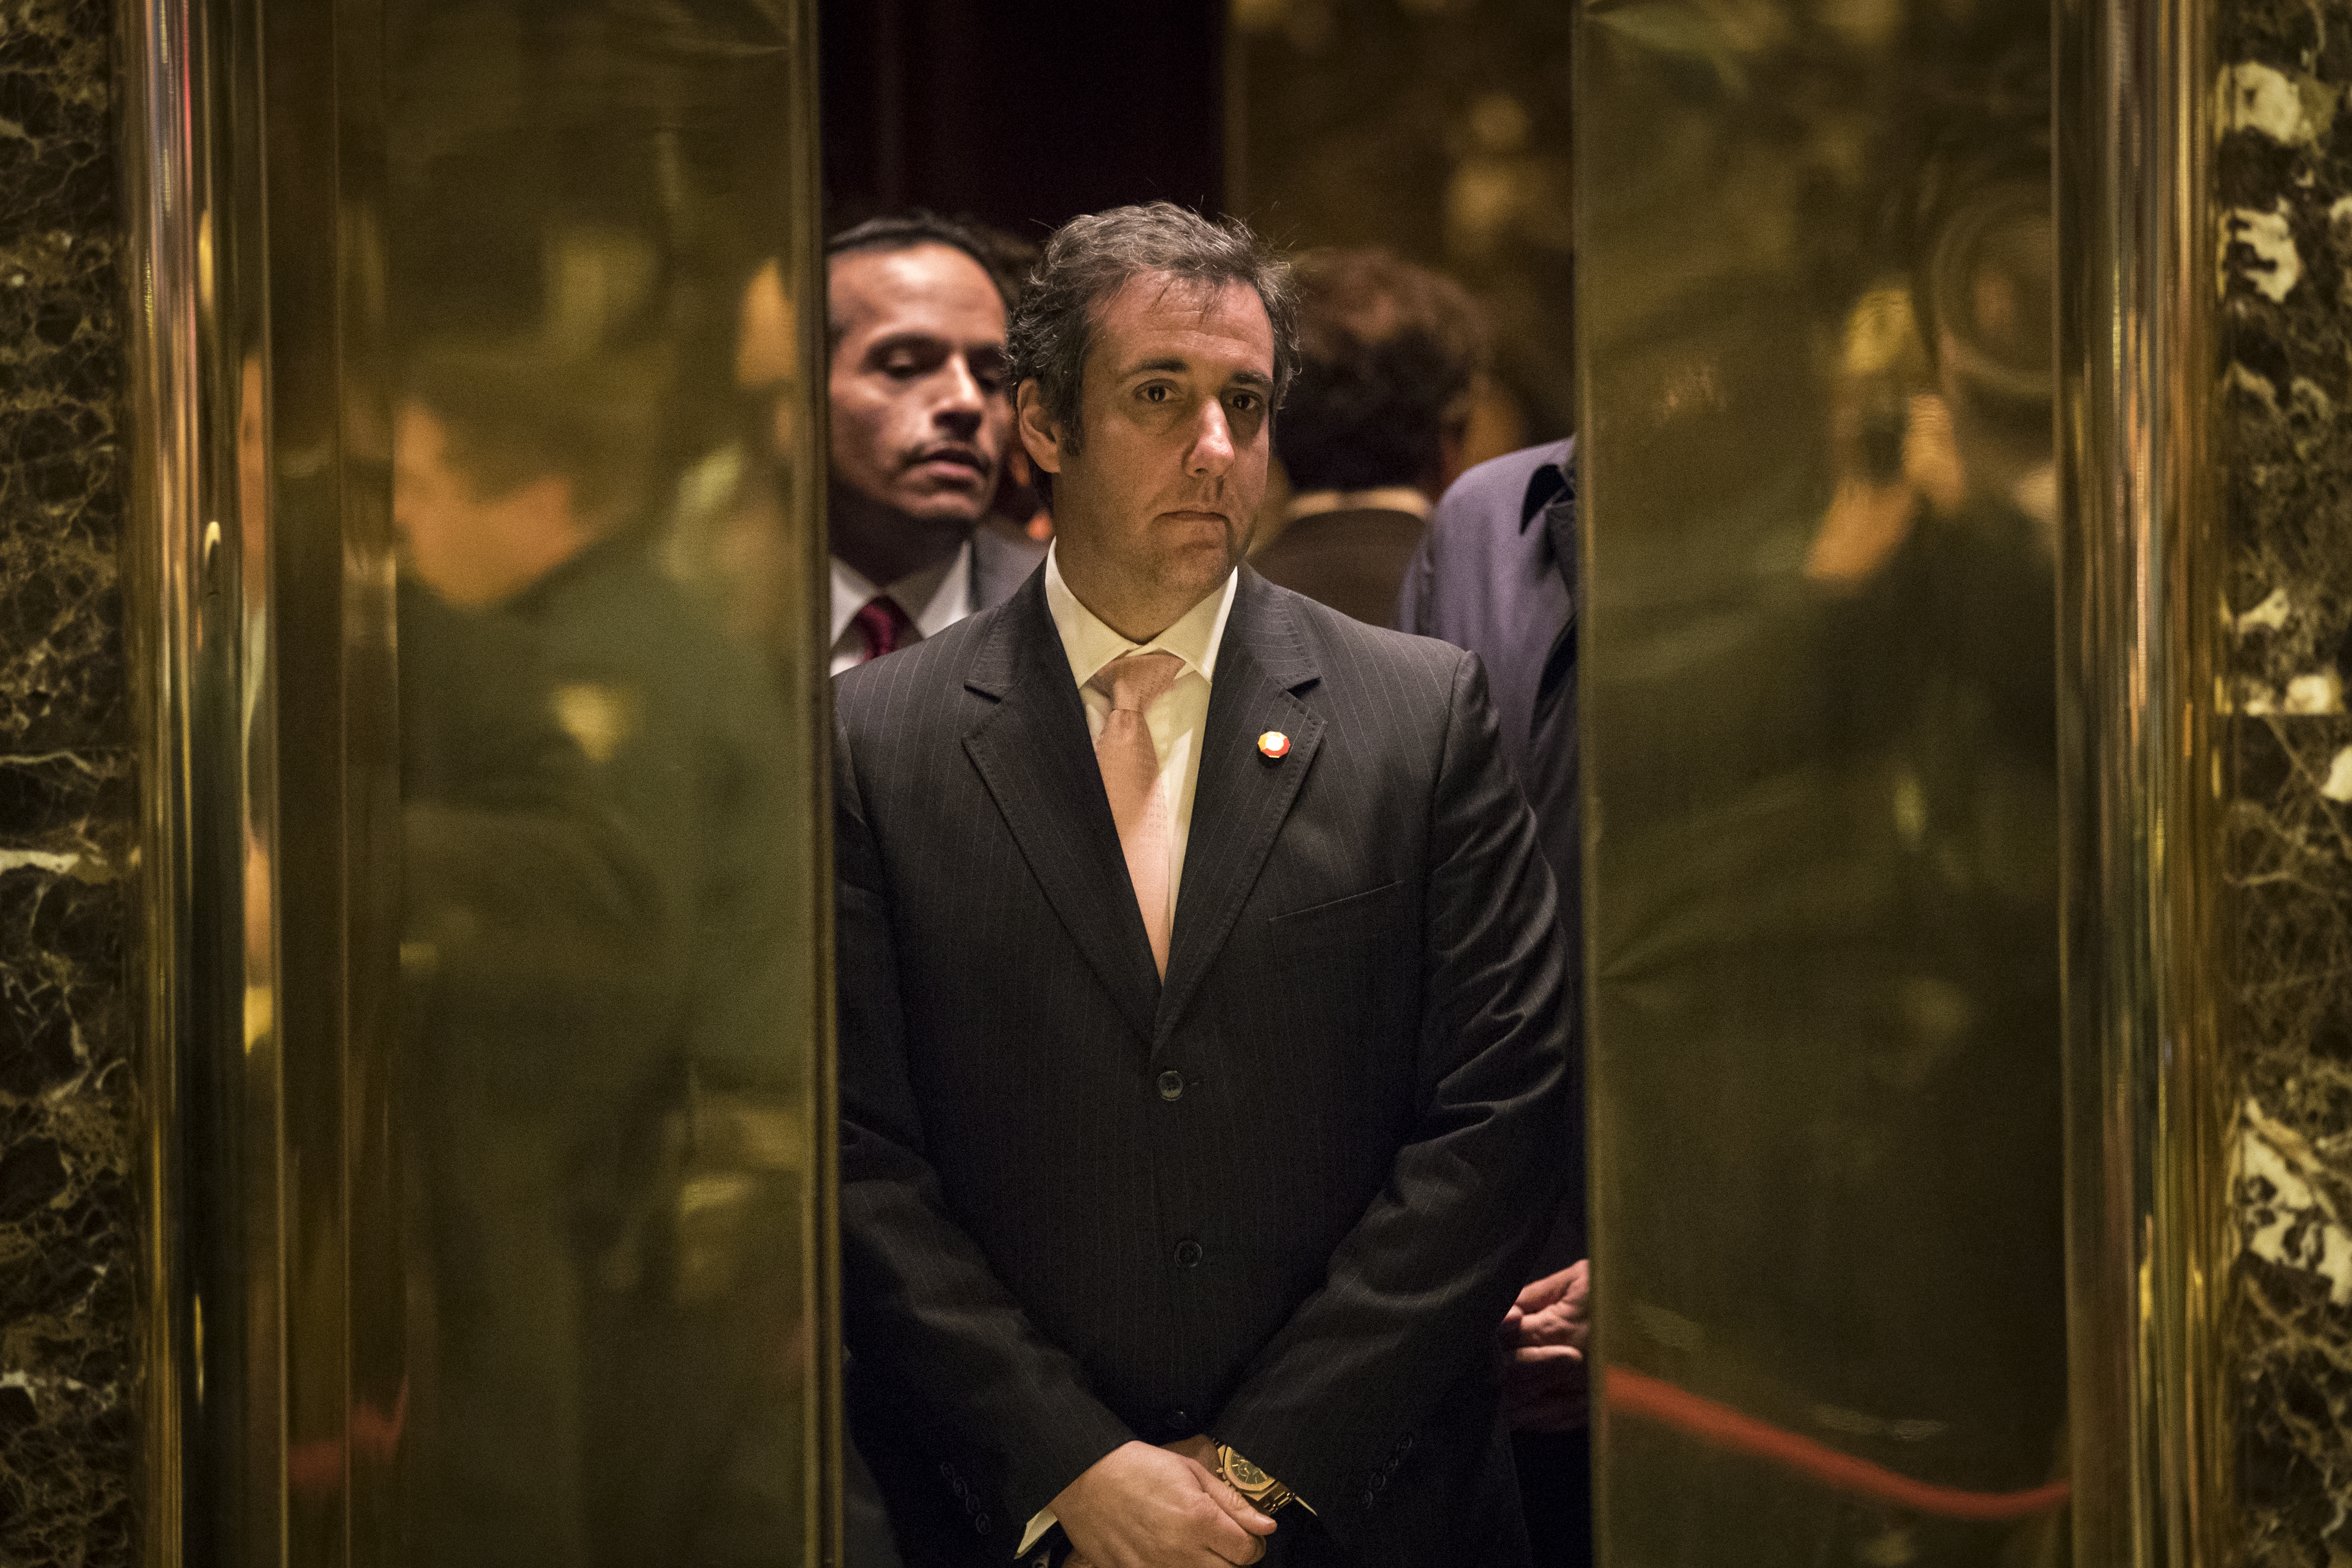 Michael Cohen, personal lawyer for President-elect Donald Trump, gets into an elevator at Trump Tower, Dec. 12, 2016 in New York City.